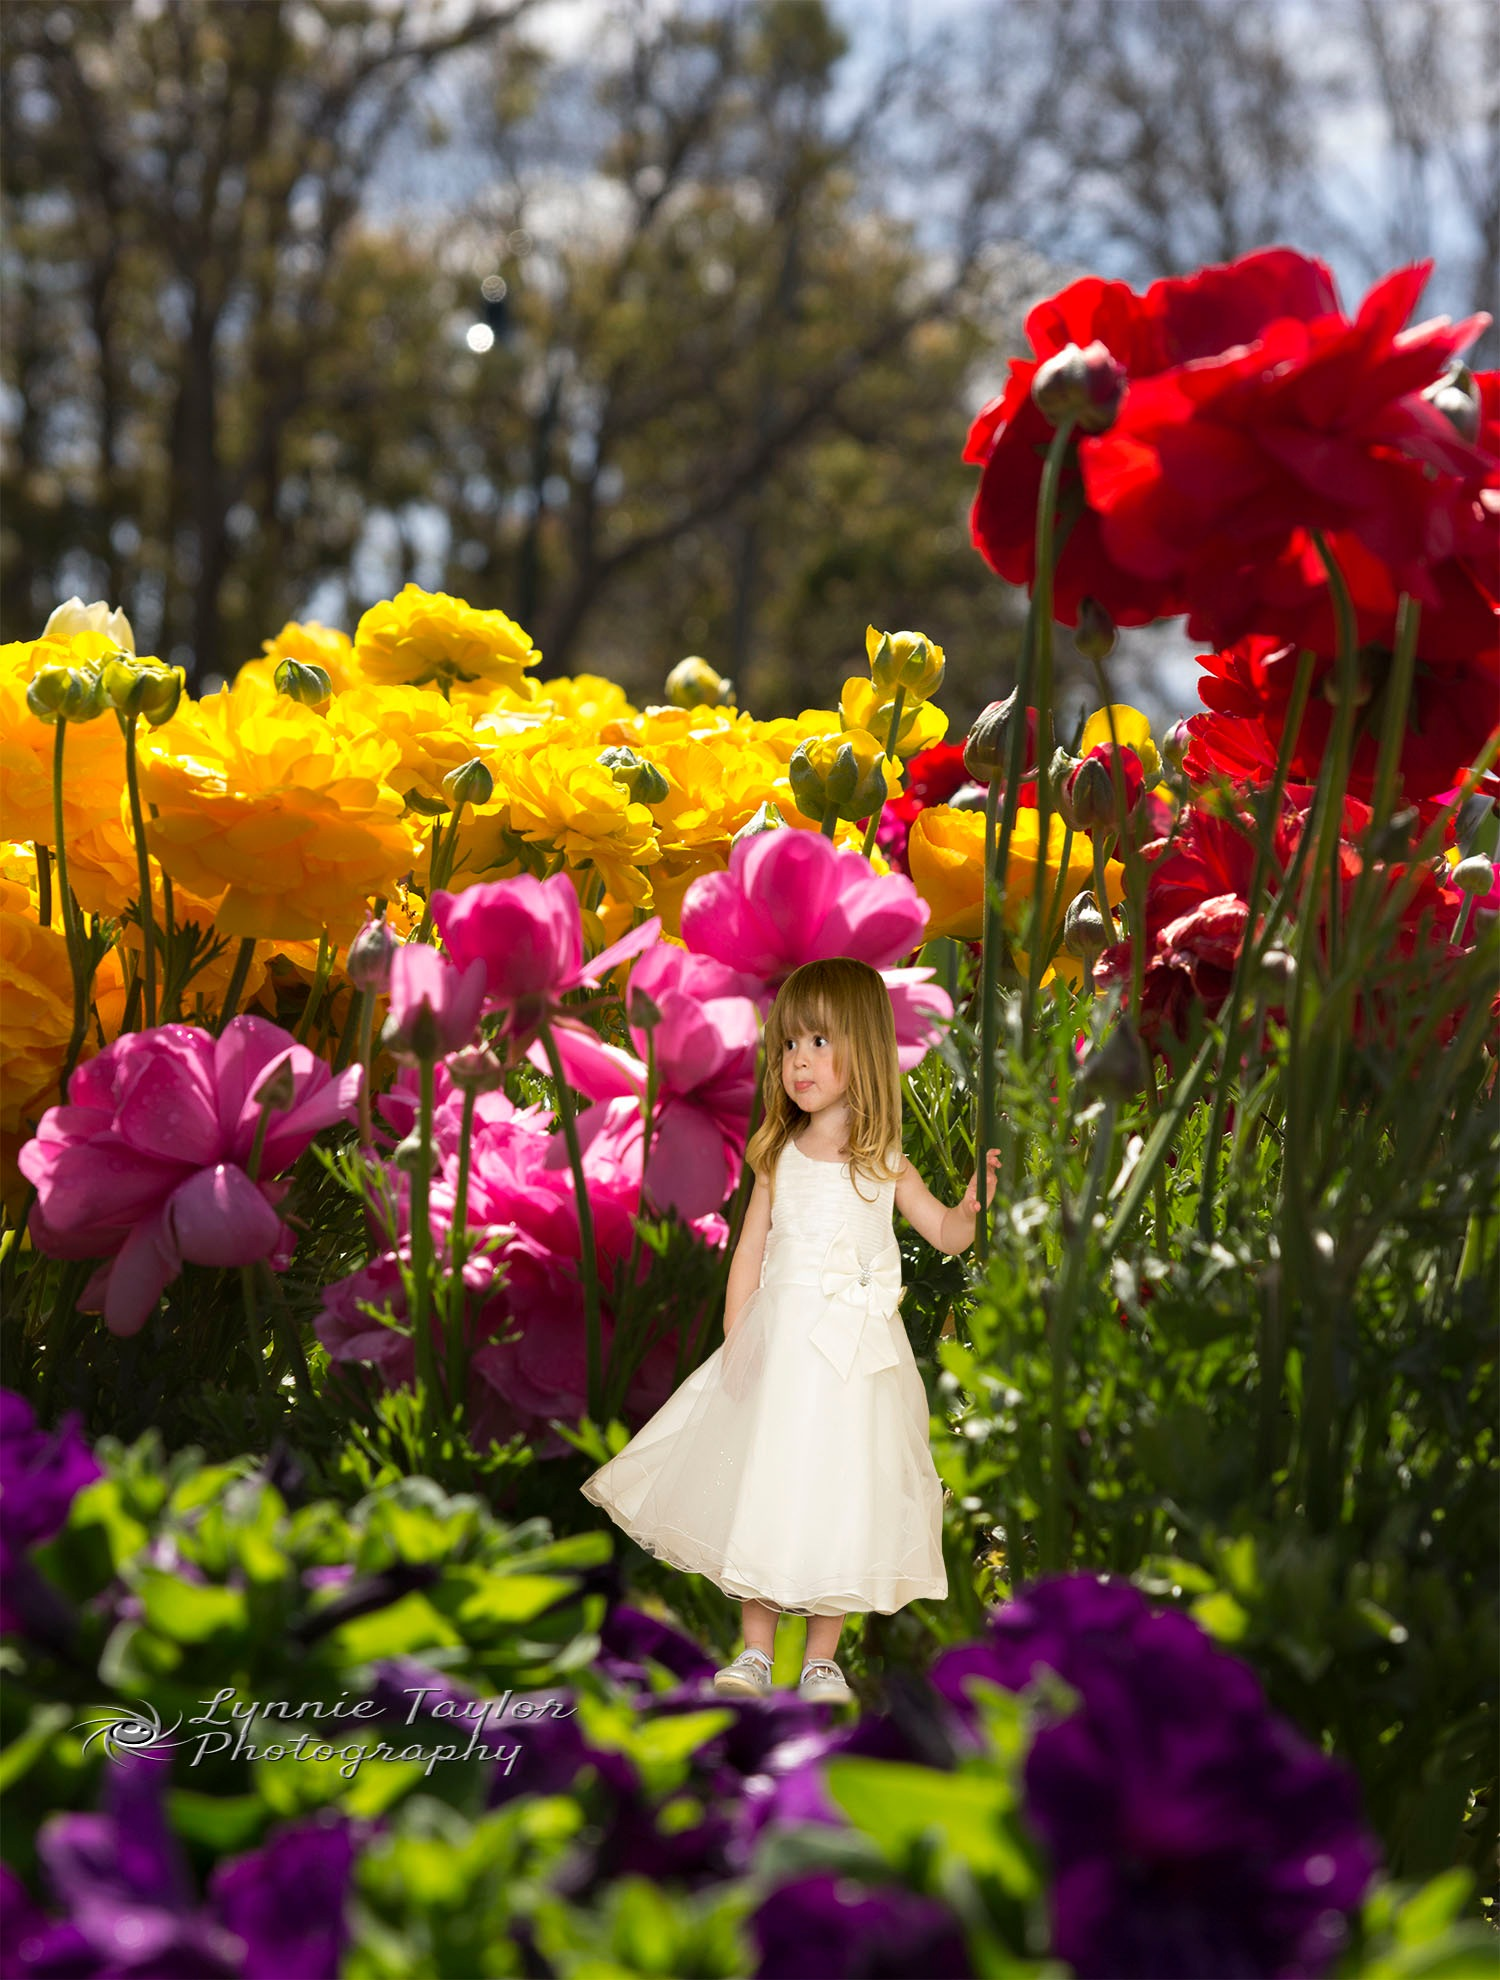 Little Girl in Garden by Lynnie taylor